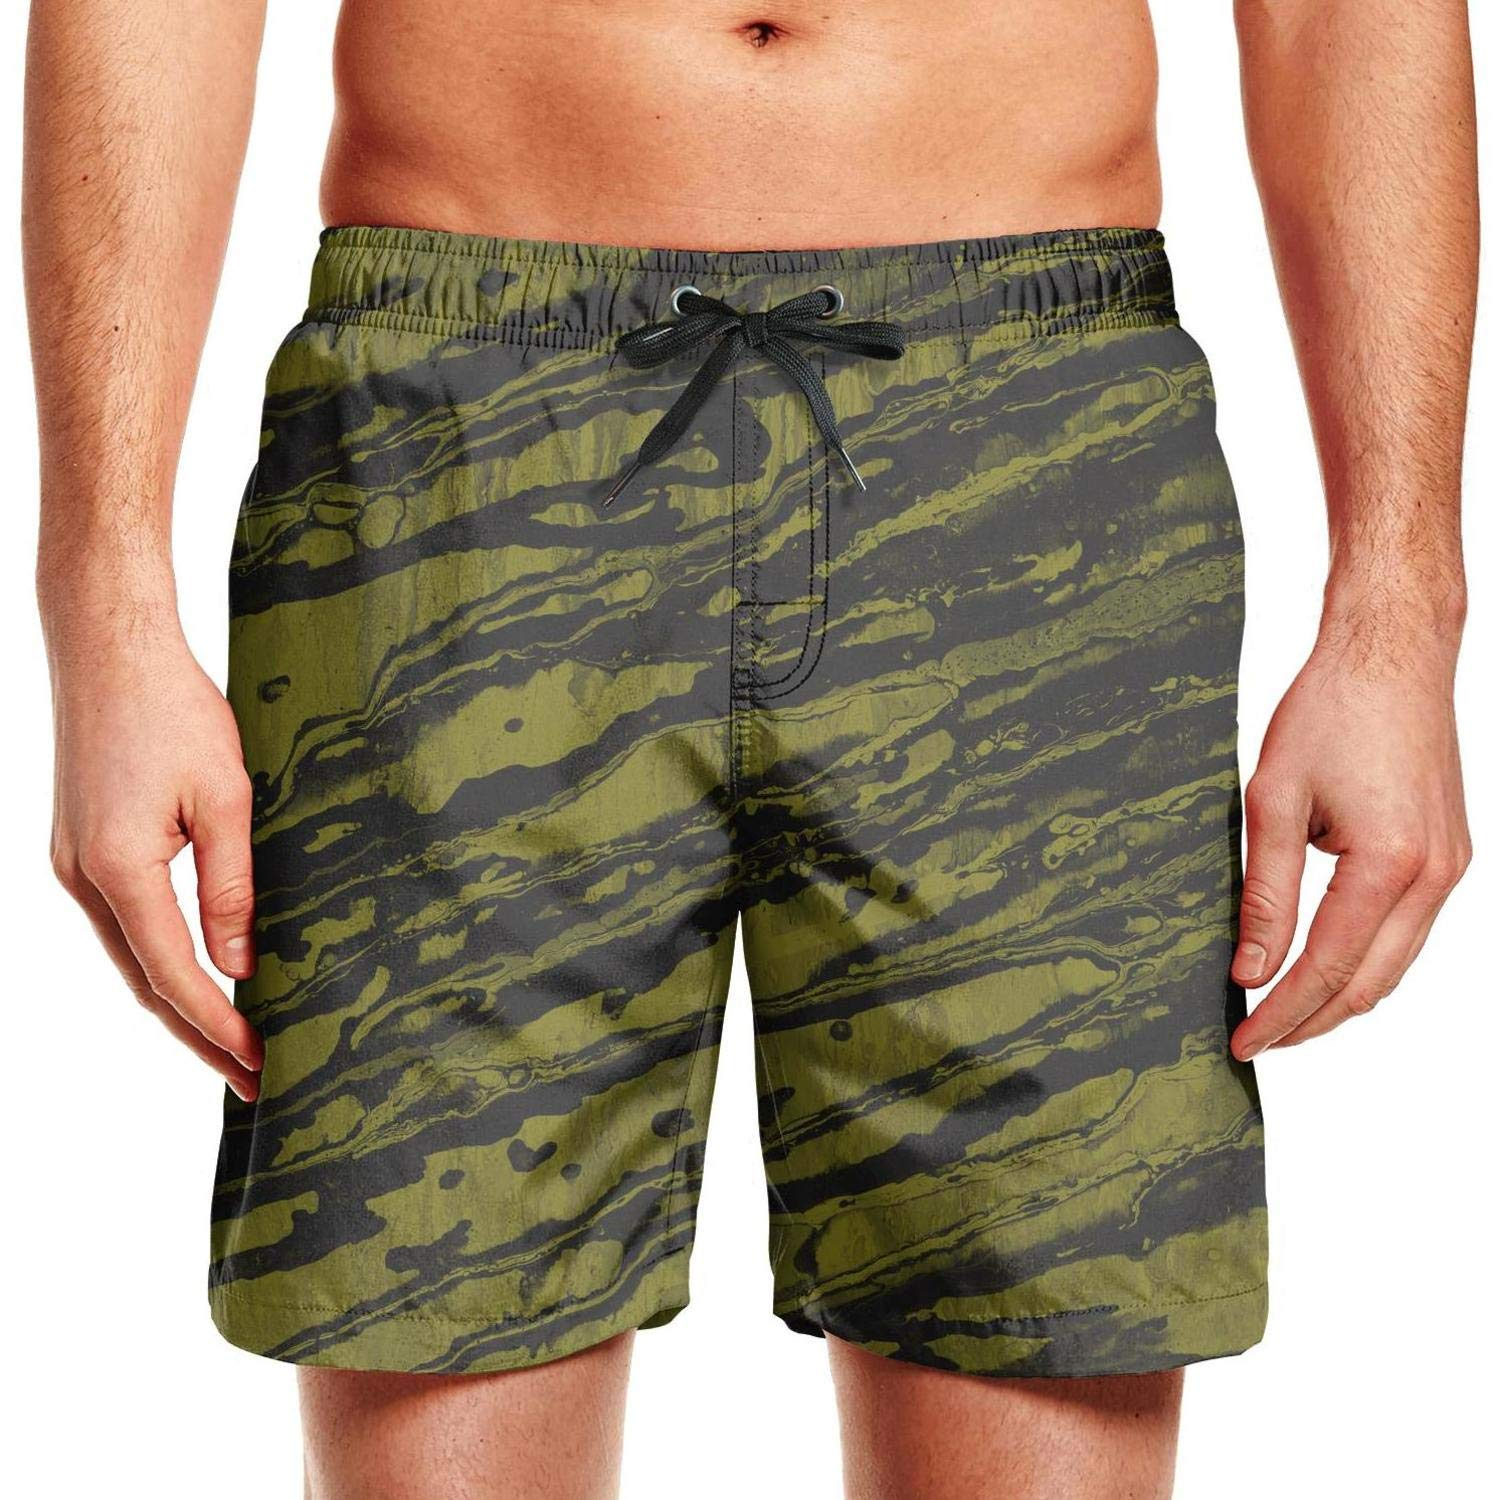 ZYLIN Mens Swim Trunks Printed Army Camo Camouflage Swimsuit Slim Fit with Mesh Lining